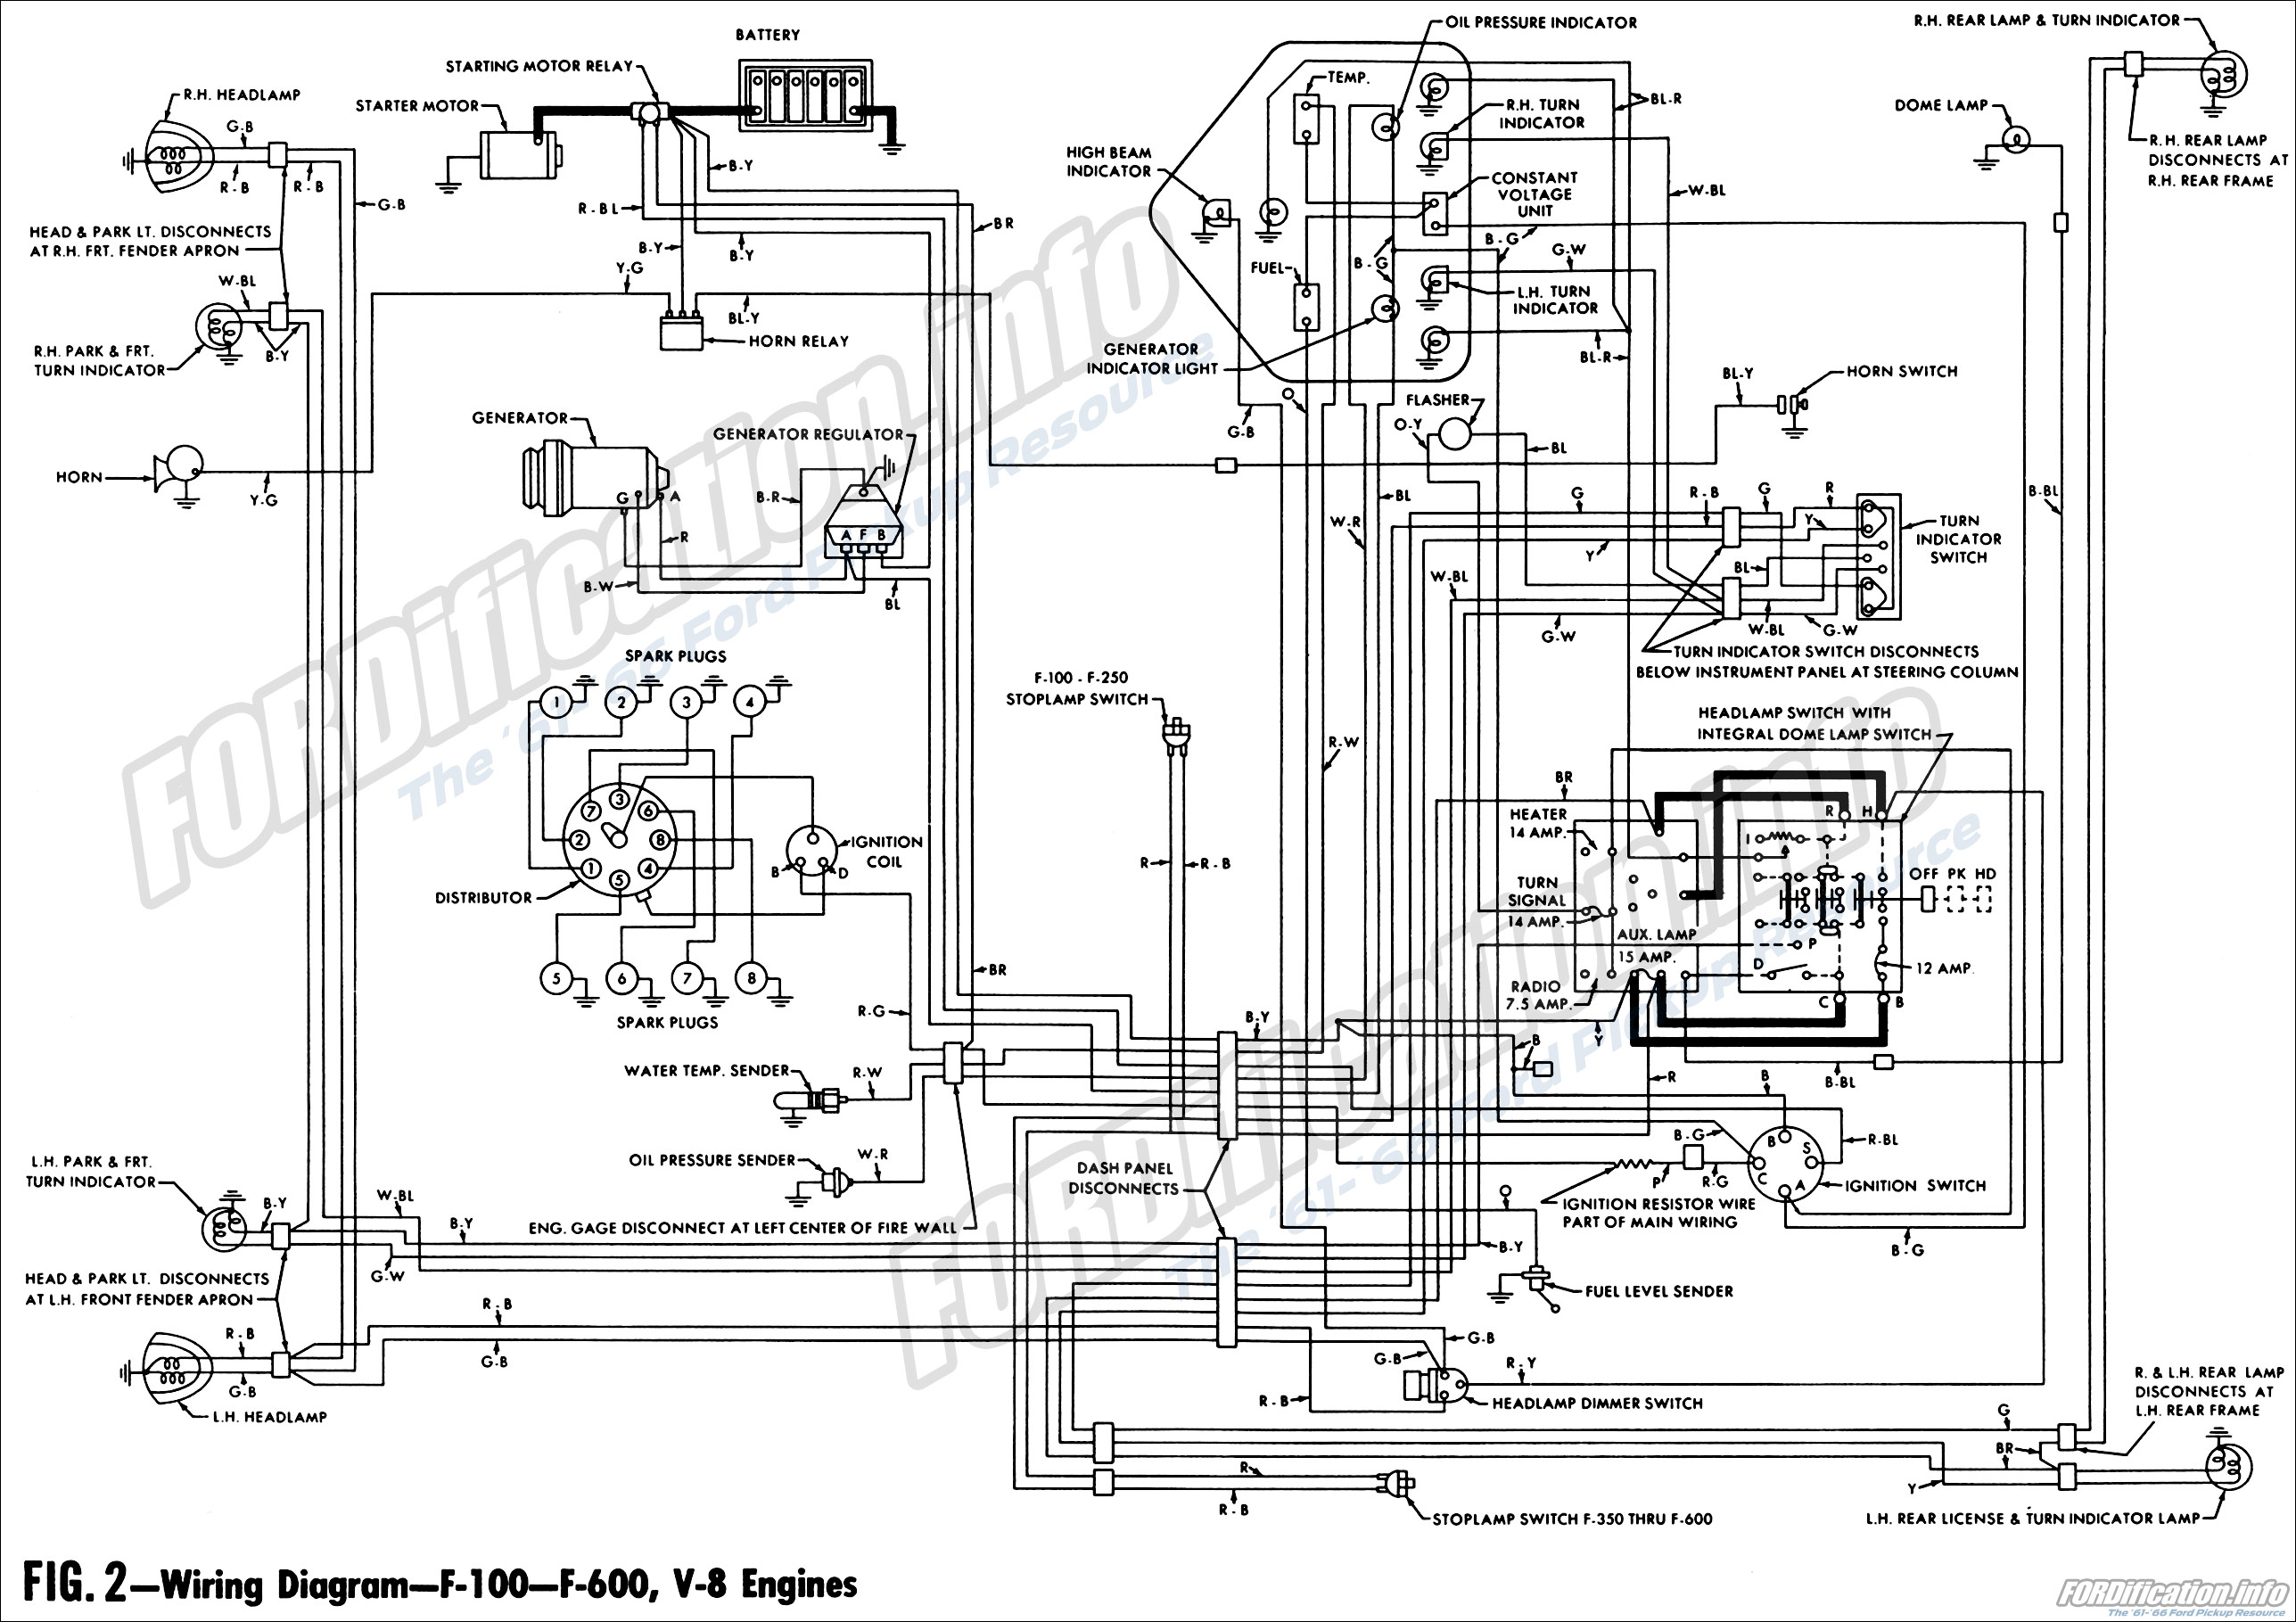 wiring diagram - 1961 f100 thru f600, v8 engines